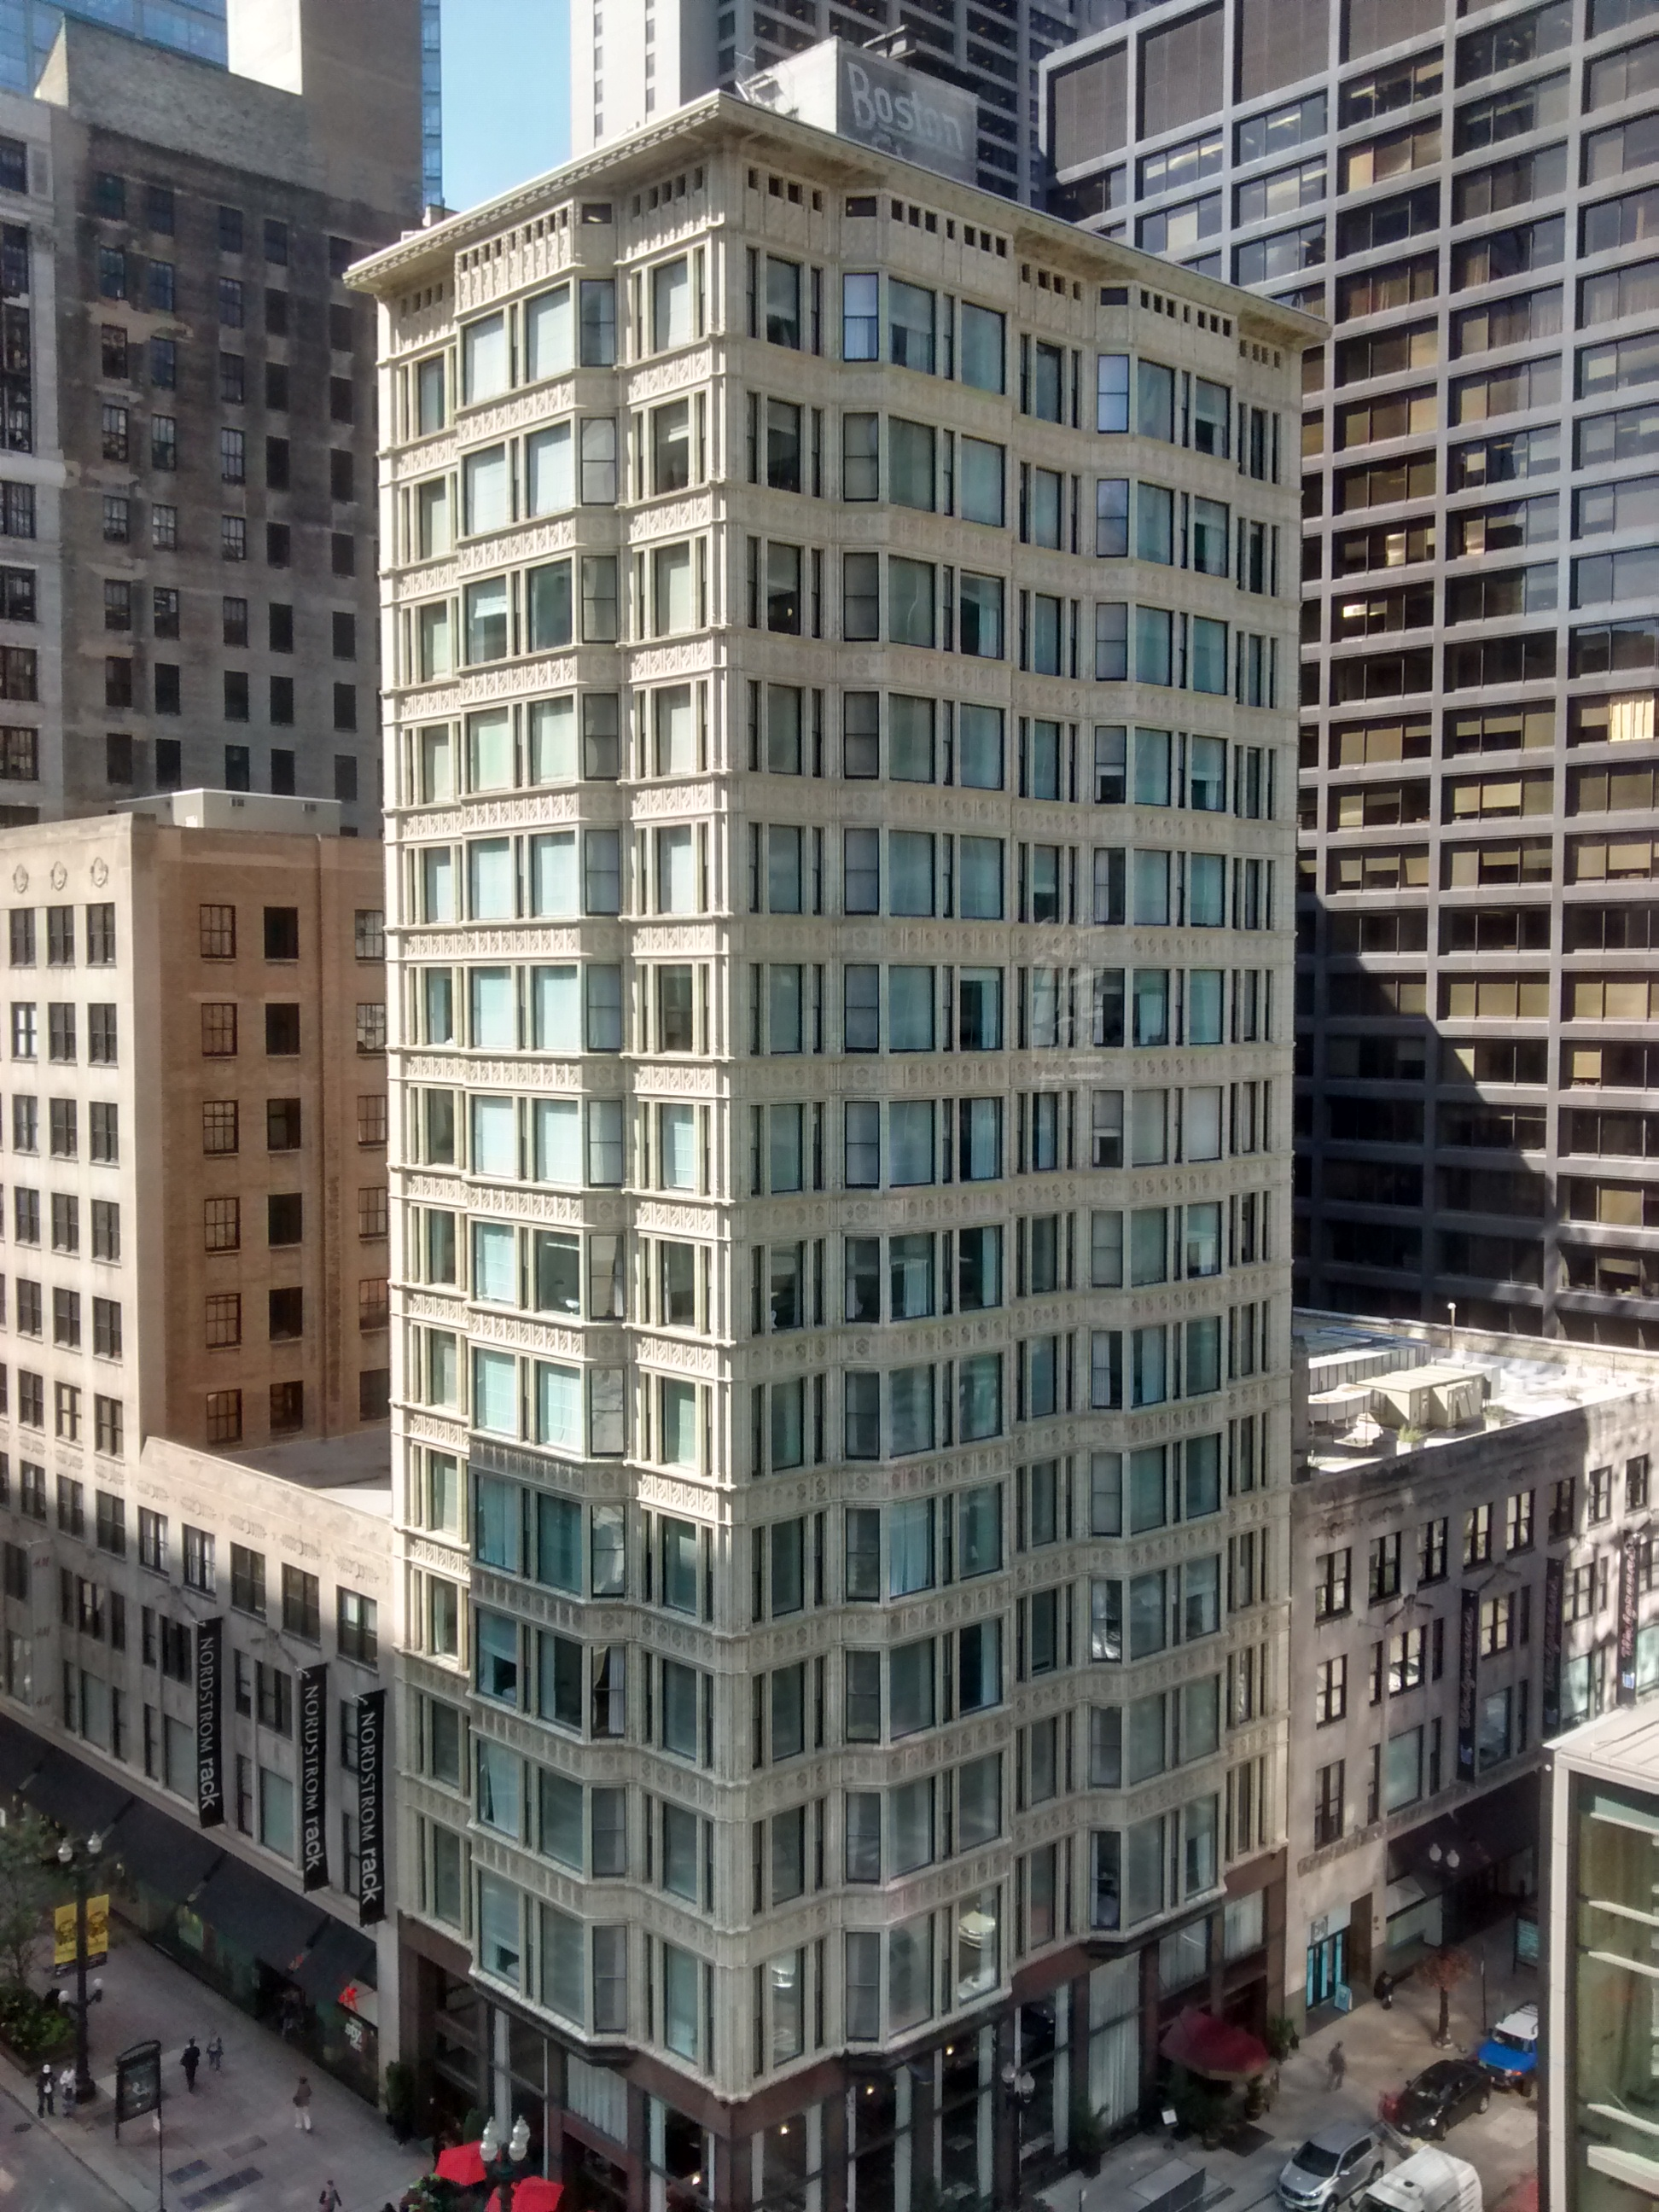 This historic early skyscraper is now home to a boutique hotel.